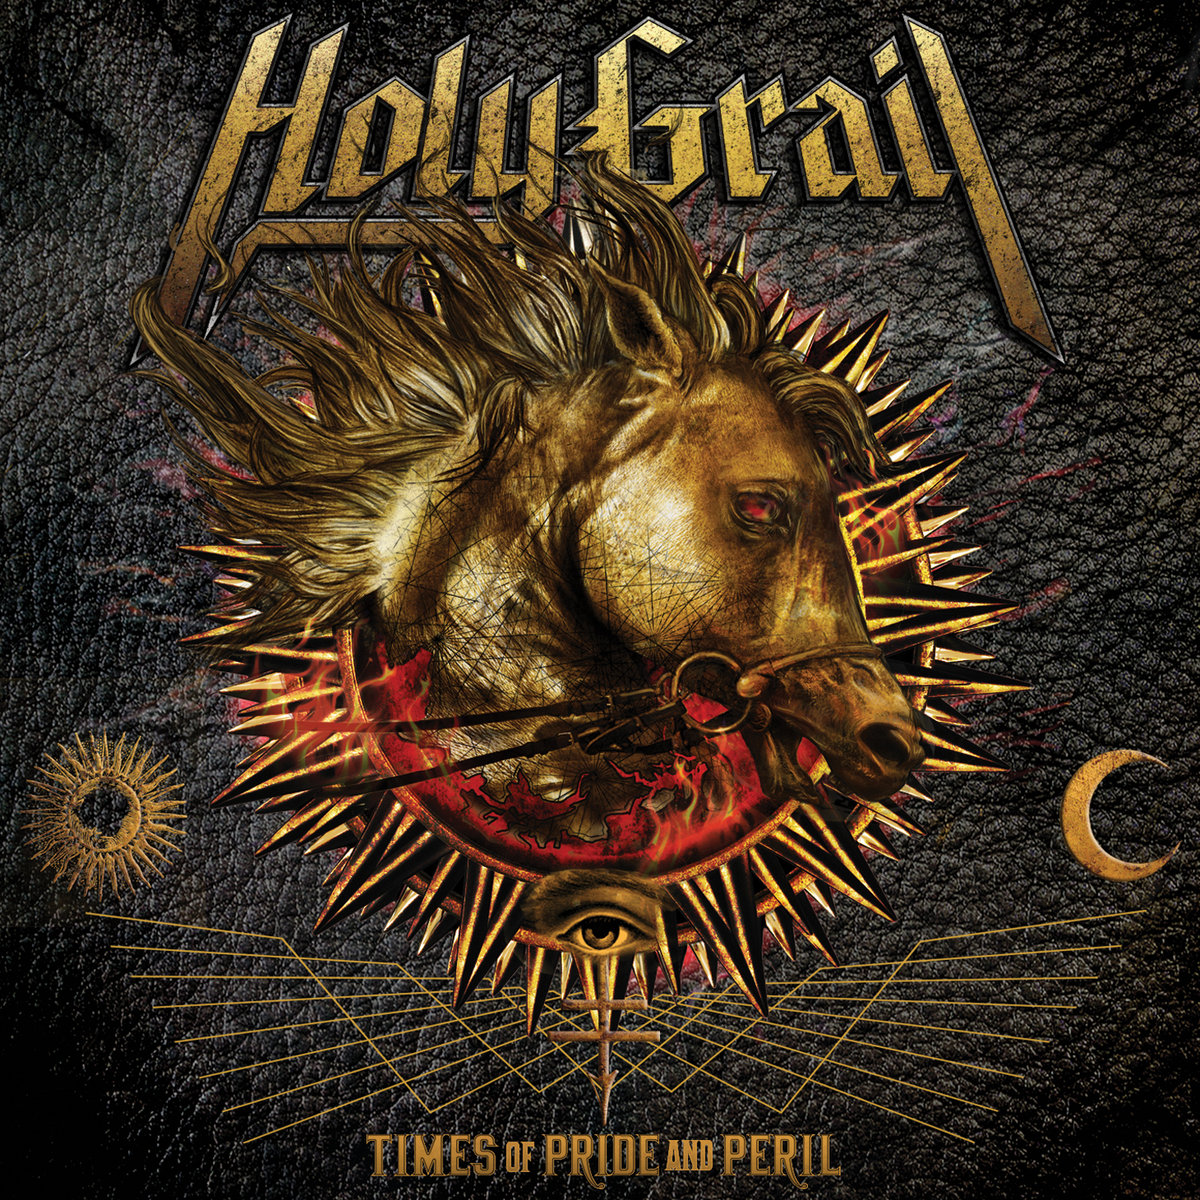 times of pride and peril holy grail